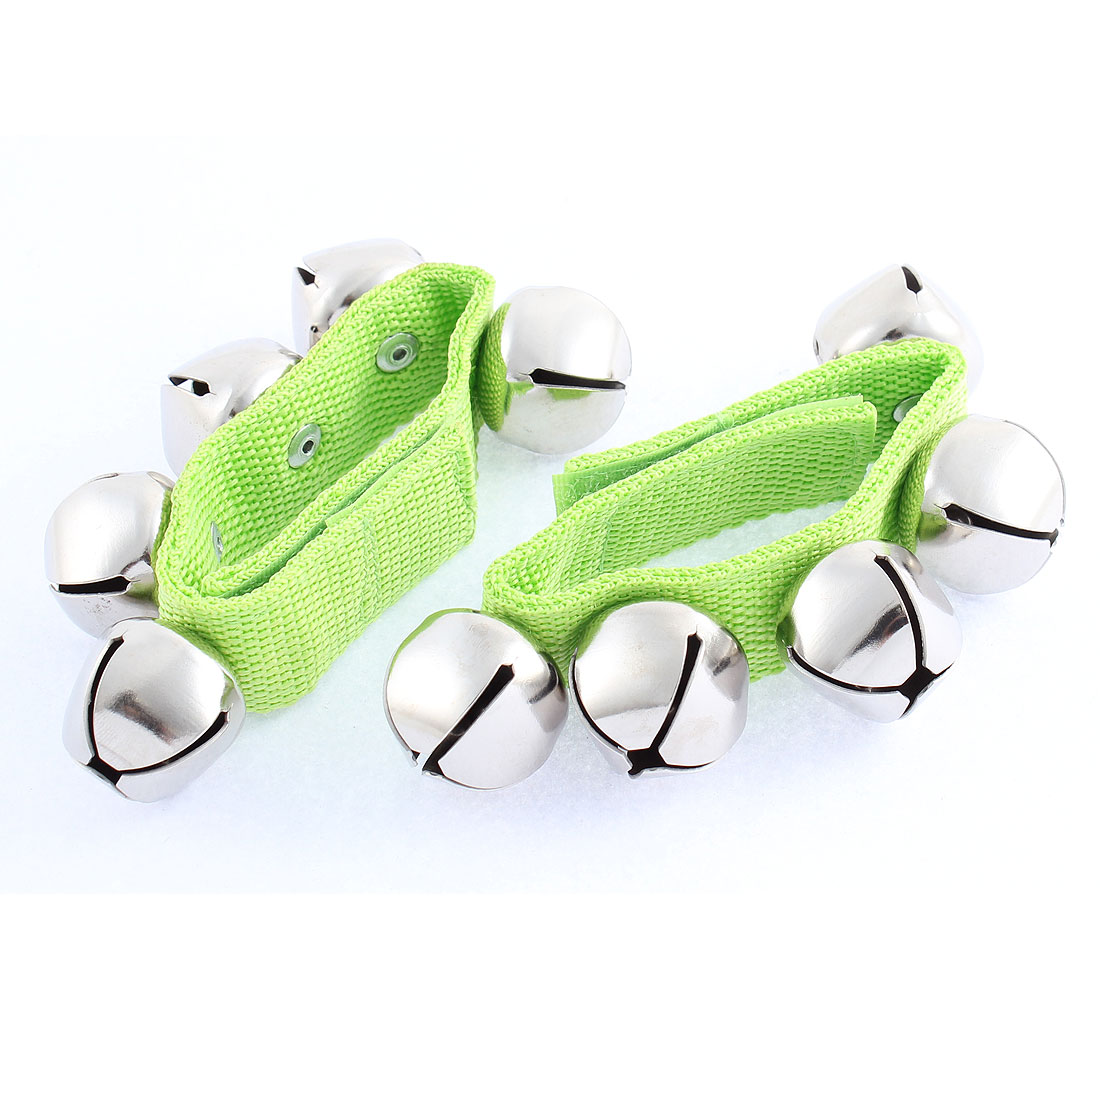 2 Pcs Pet Dog Bell Stick Shaker Rattle Wrist Bracelet Hand Ankle Strap Green